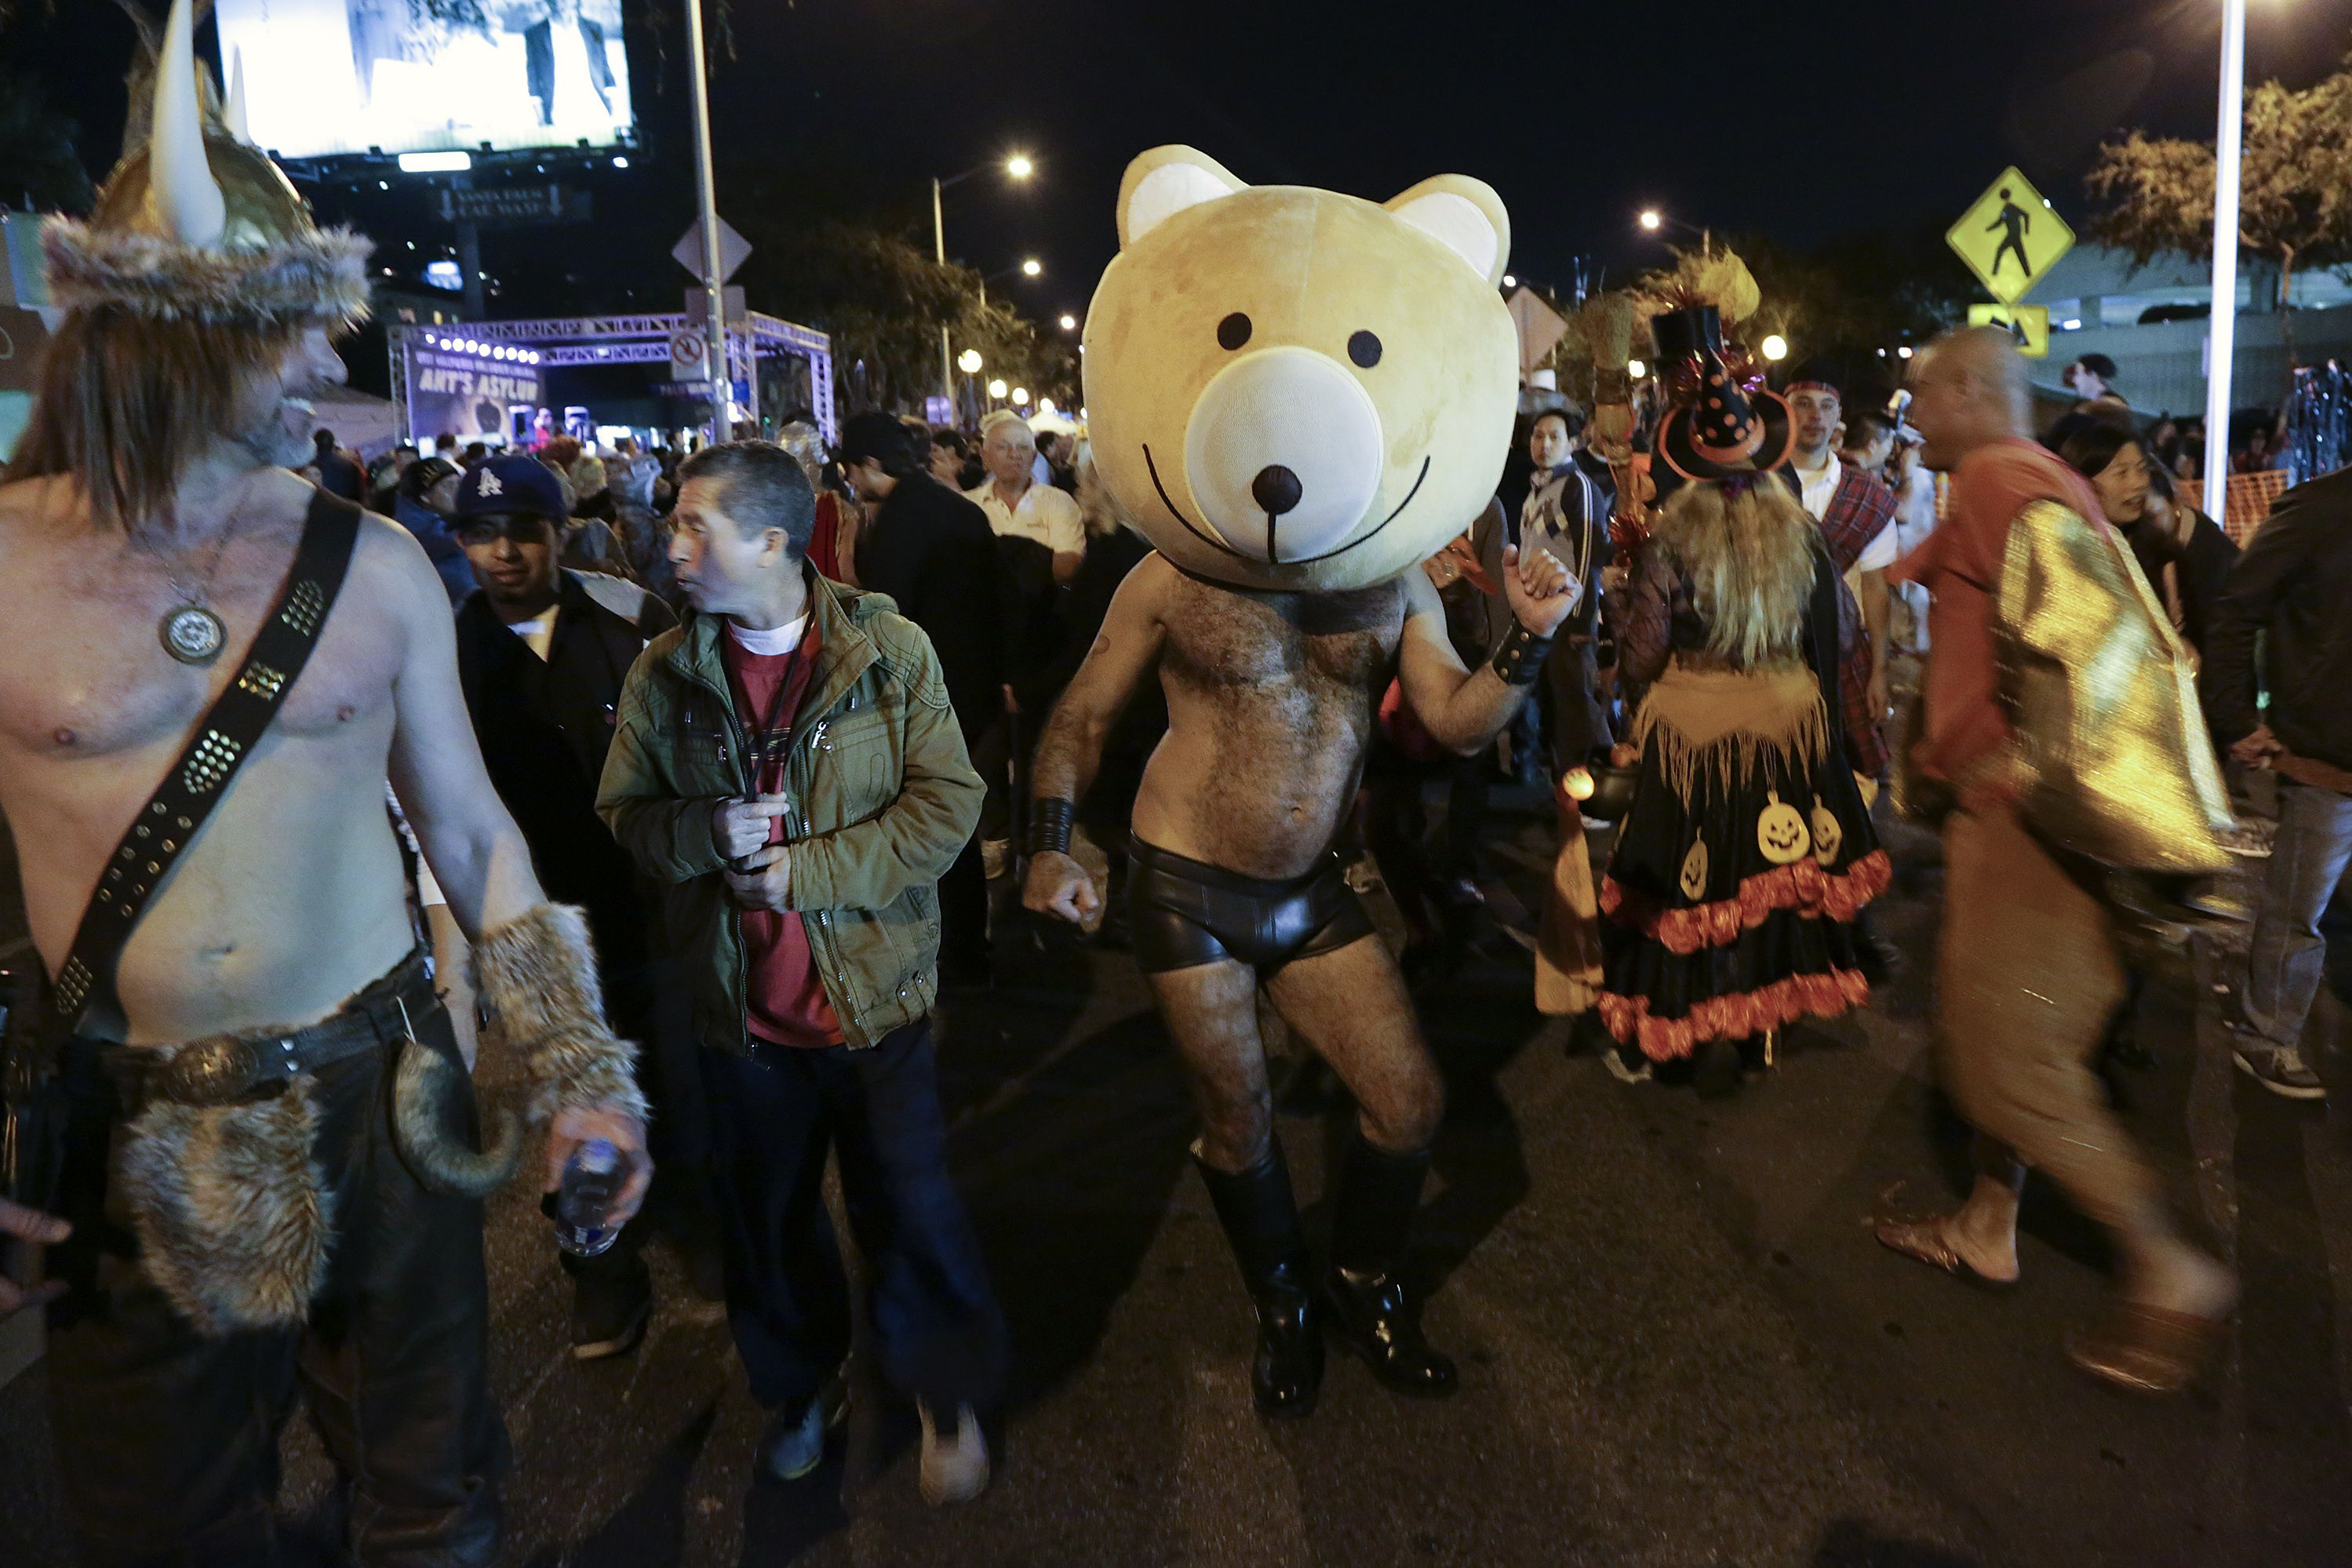 Revelers dance on the street during the West Hollywood Halloween Costume Carnaval, which attracts nearly 500,000 people annually in West Hollywood, California October 31, 2013. REUTERS/Jonathan Alcorn (UNITED STATES - Tags: SOCIETY) - RTX14W4B